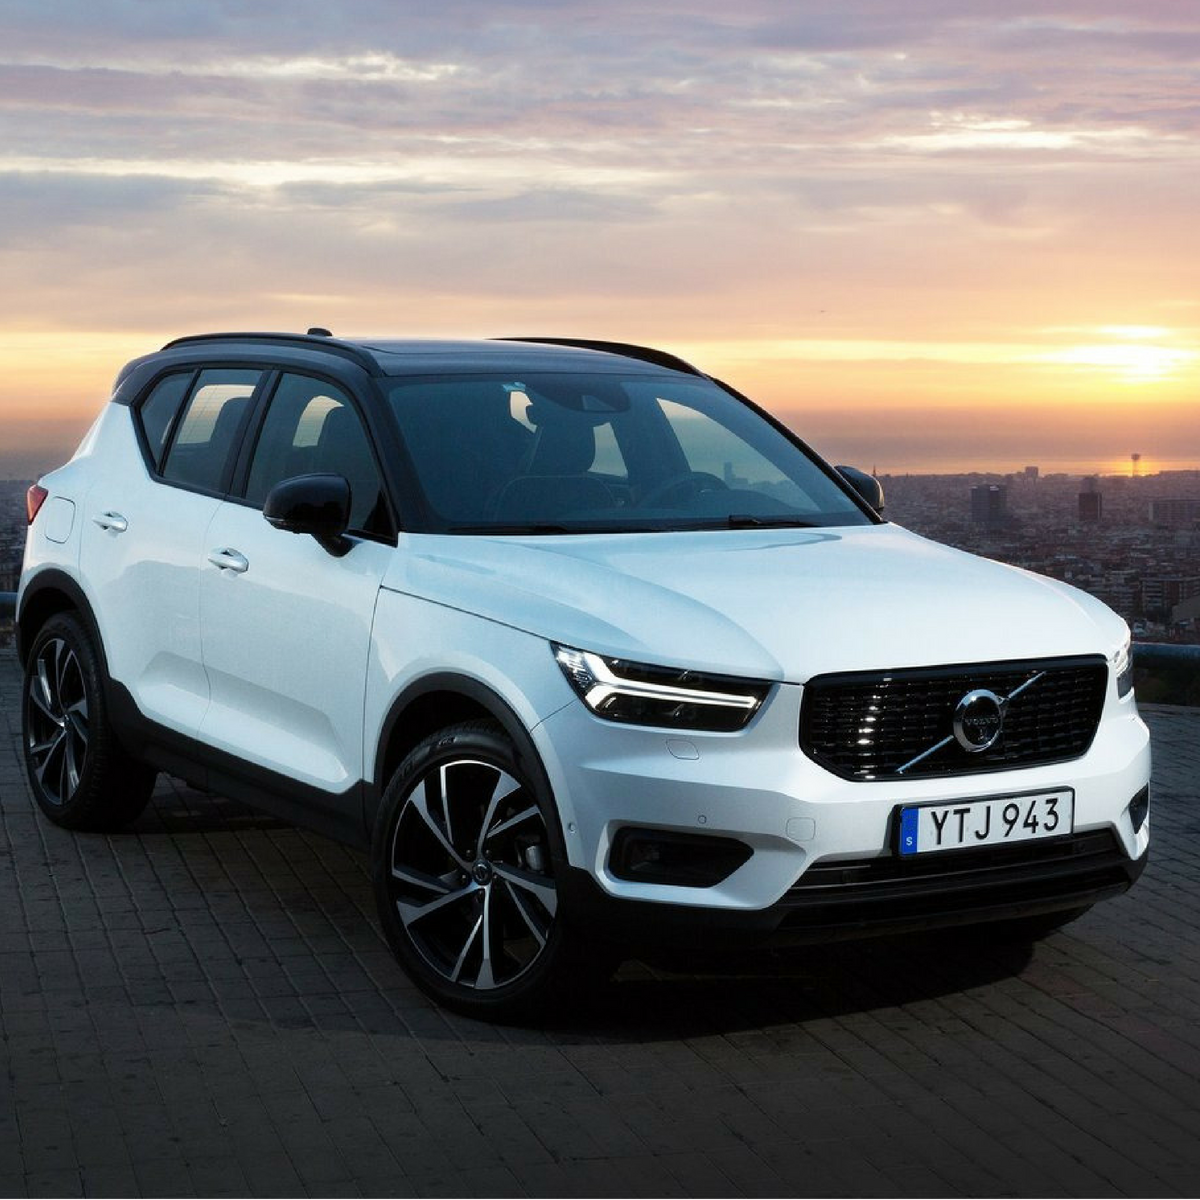 Xc40 The Flag Bearer For Volvo S Brand In India With Images Autok